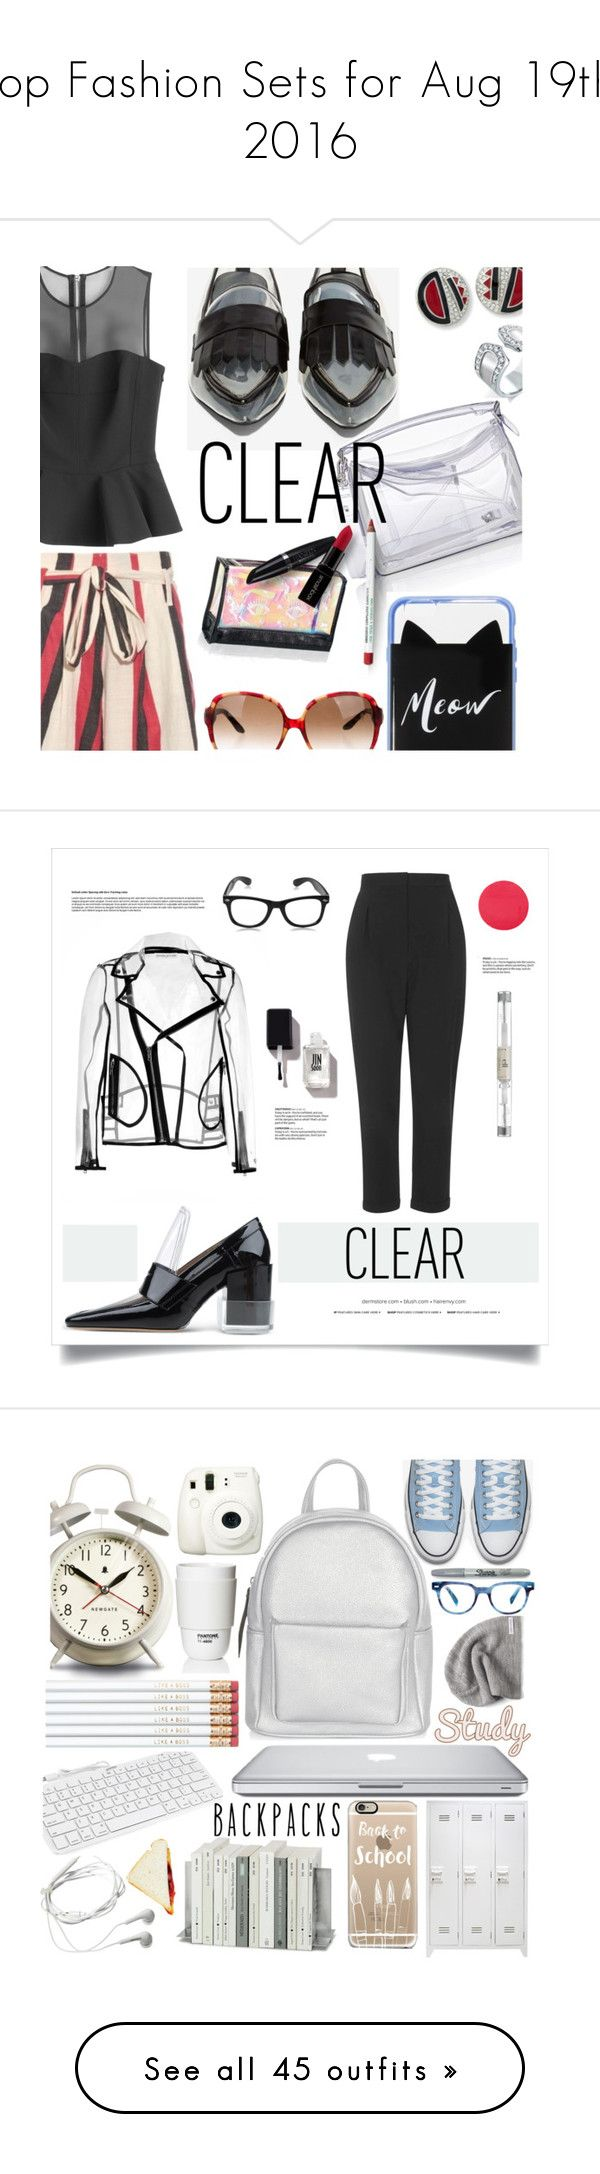 """""""Top Fashion Sets for Aug 19th, 2016"""" by polyvore ❤ liked on Polyvore featuring Kenneth Jay Lane, Bling Jewelry, Jeffrey Campbell, Loewe, Kate Spade, McQ by Alexander McQueen, ace & jig, Obsessive Compulsive Cosmetics, Christian Dior and Benefit"""